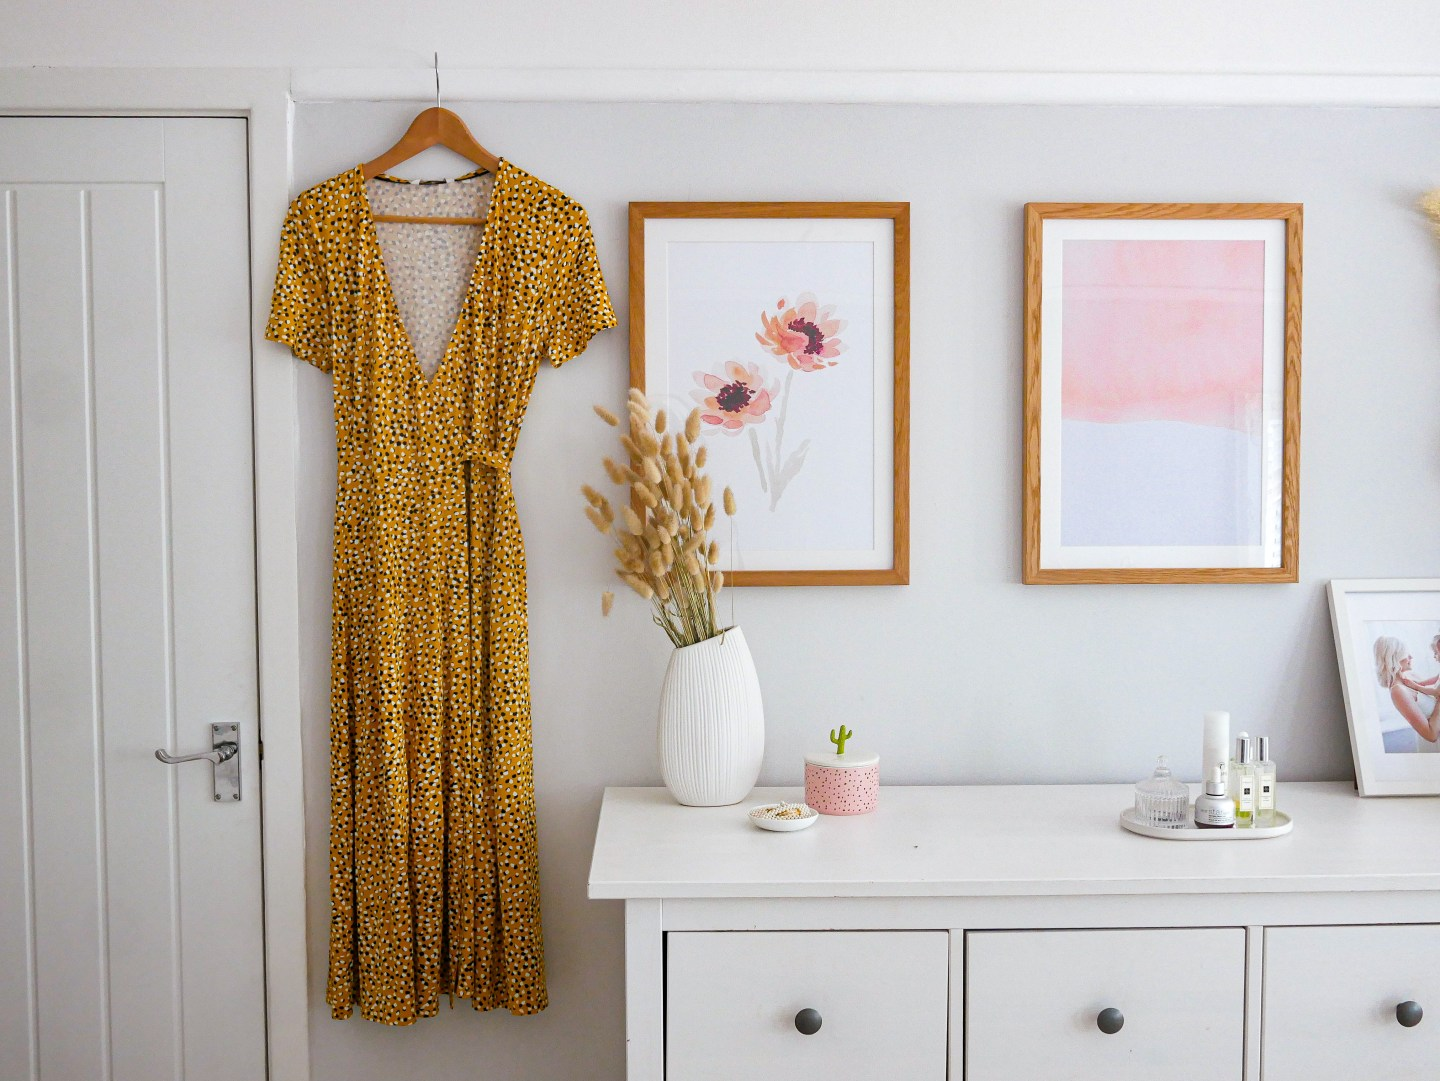 A yellow dress hanging off the picture rail in a grey bedroom next to two peach prints in wooden frames